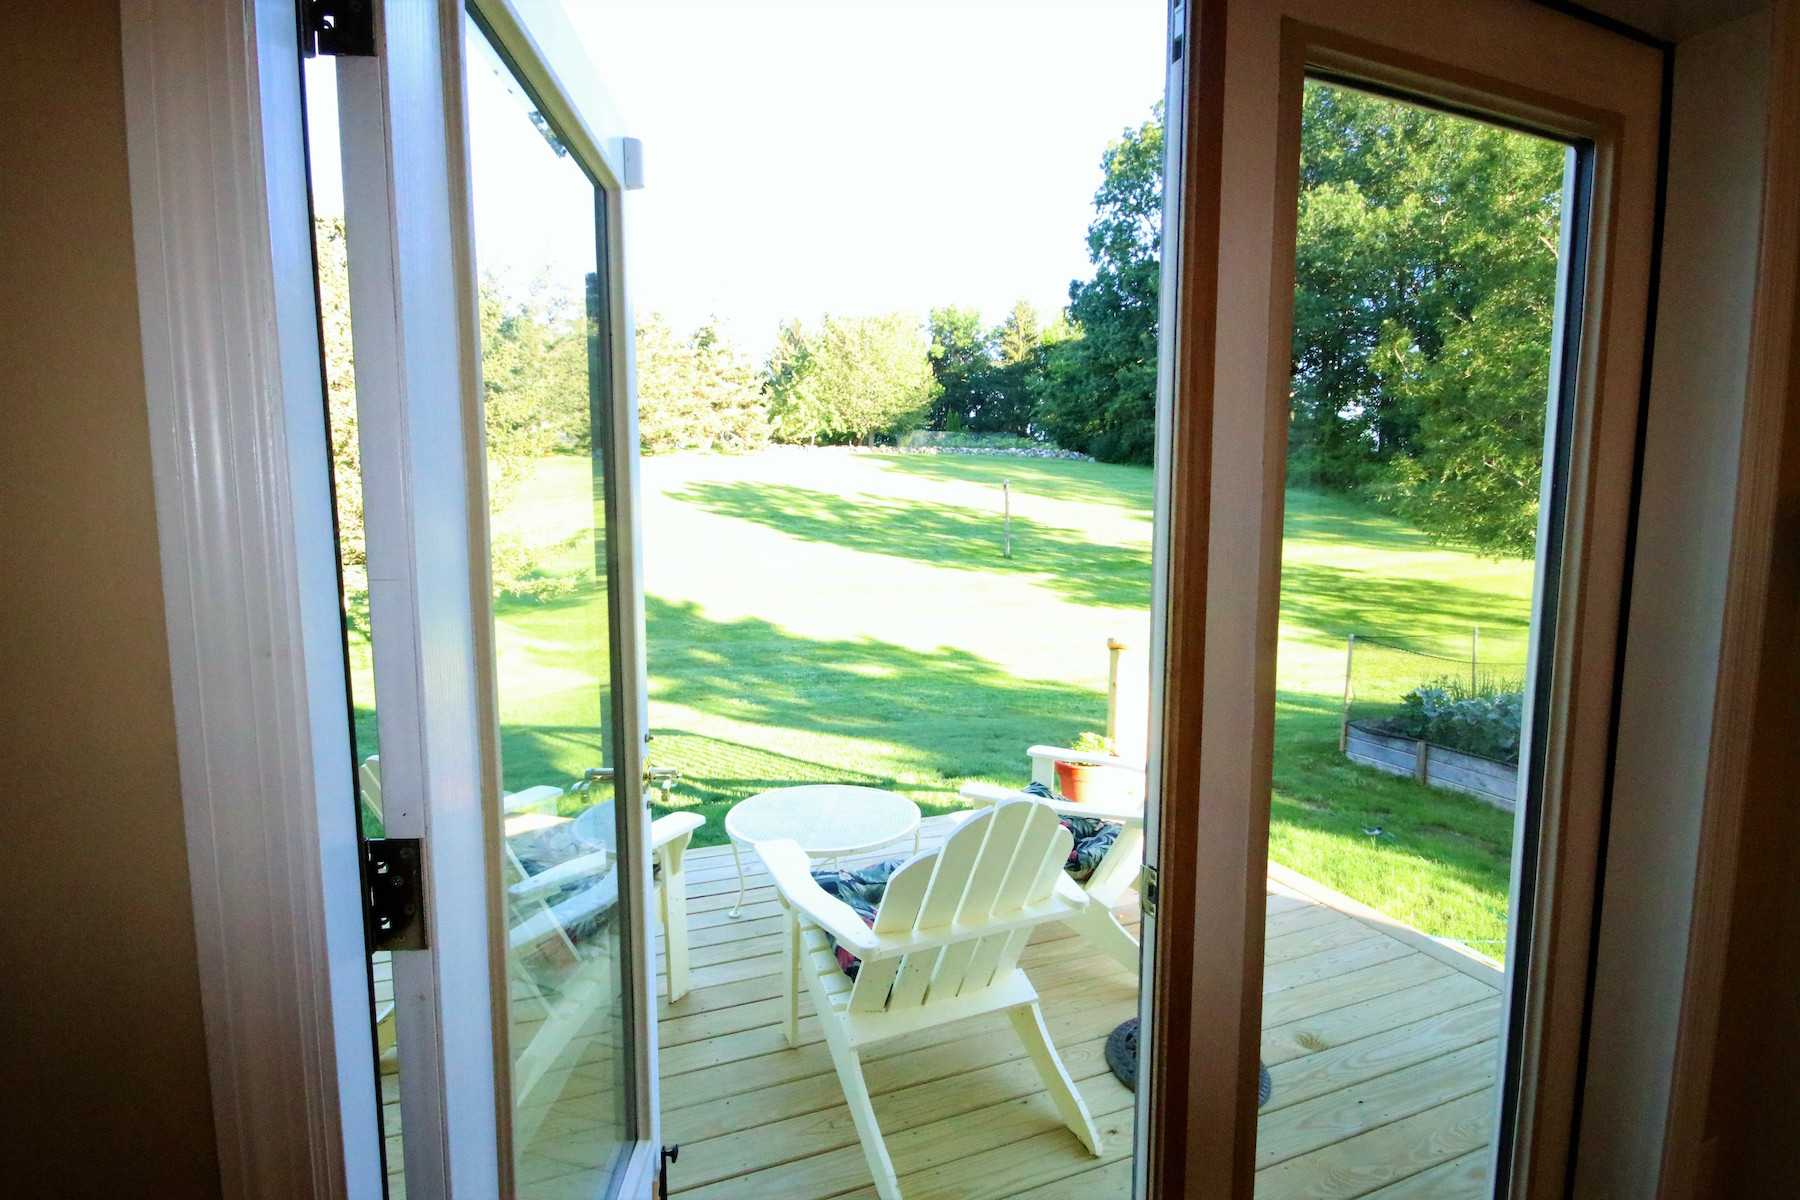 Additional photo for property listing at Custom Jewel On A Hill With Fireworks! 249  Kaydeross Av East Saratoga Springs, New York 12866 United States